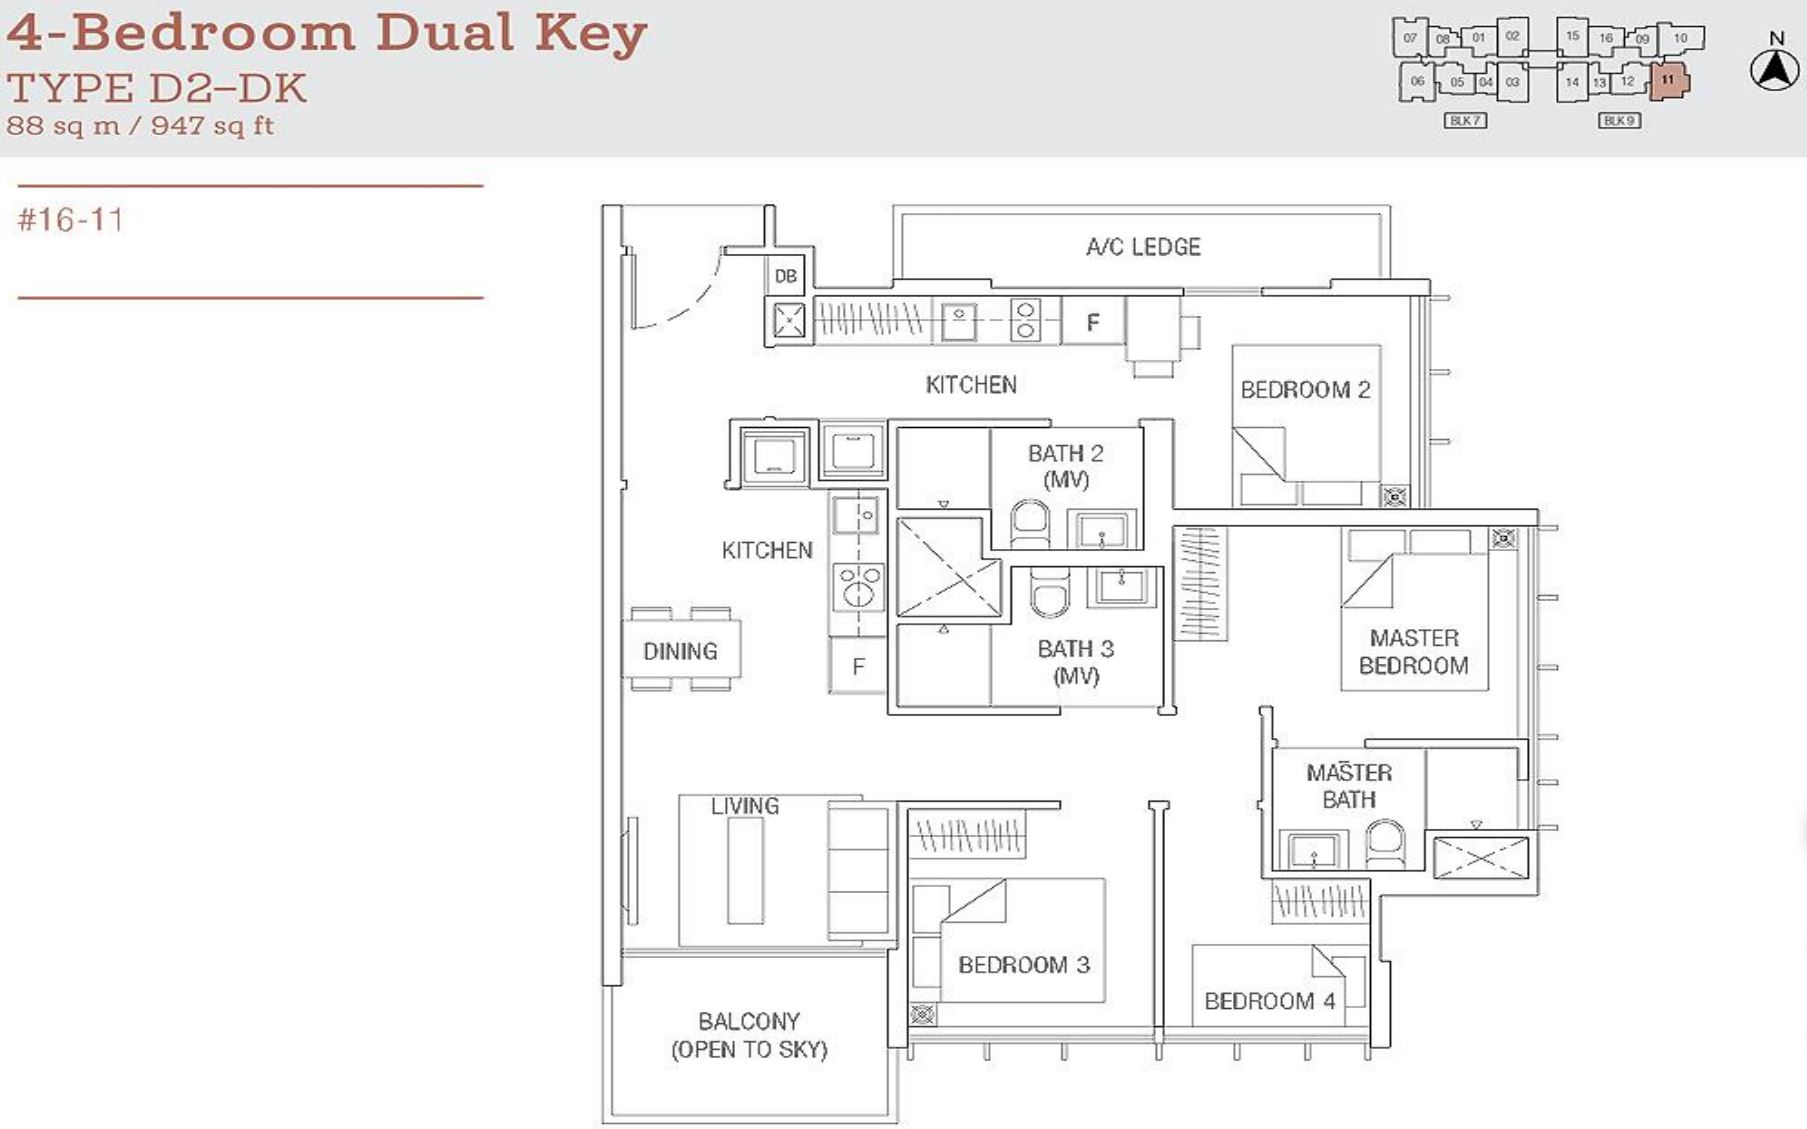 Tre Residences FloorPlan - 4 Bedroom Dual Key Type D2-DK_2